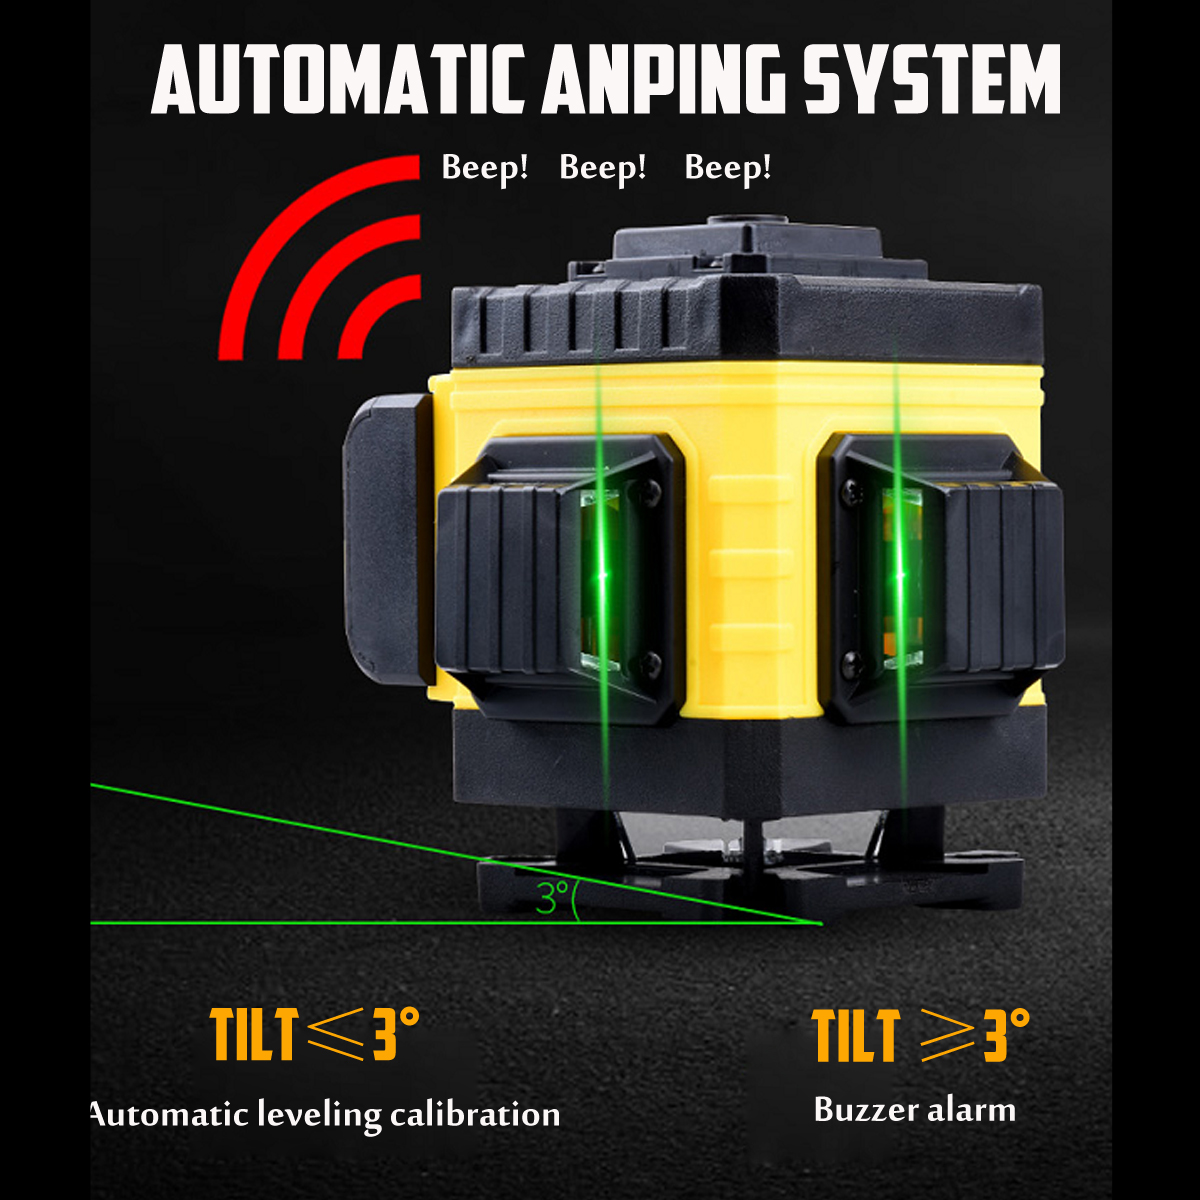 0bbae286 767f 414f ab89 272158fafaaf 360° Rotary 16 Lines Self Leveling Laser Level 4D Green Beam Auto Measuring Tool